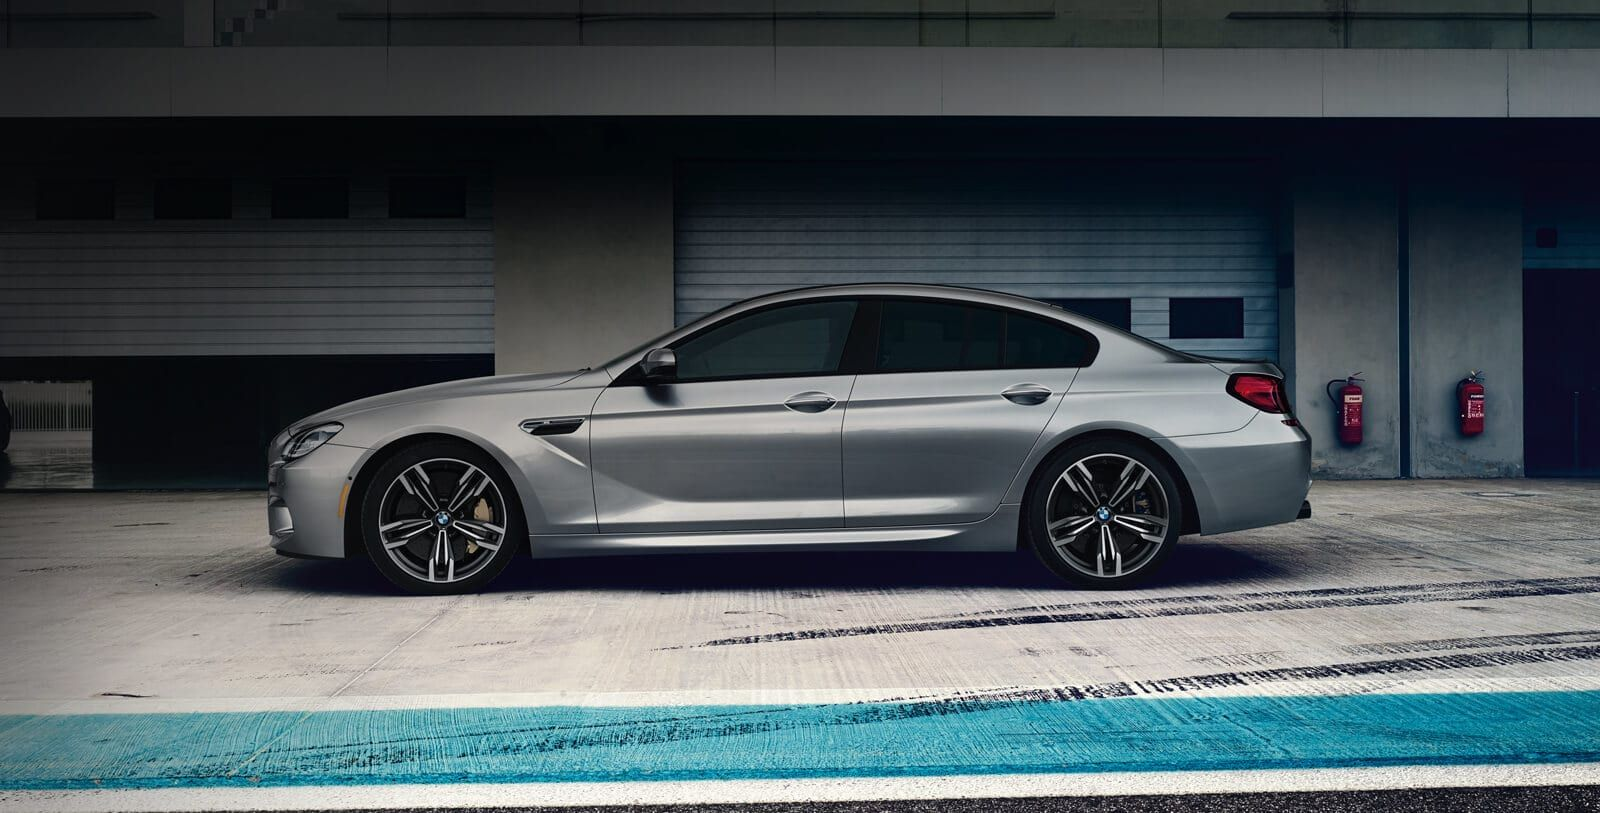 Profile Shot Of The 2019 Bmw M6 Gran Coupe In A Garage Bmw Car